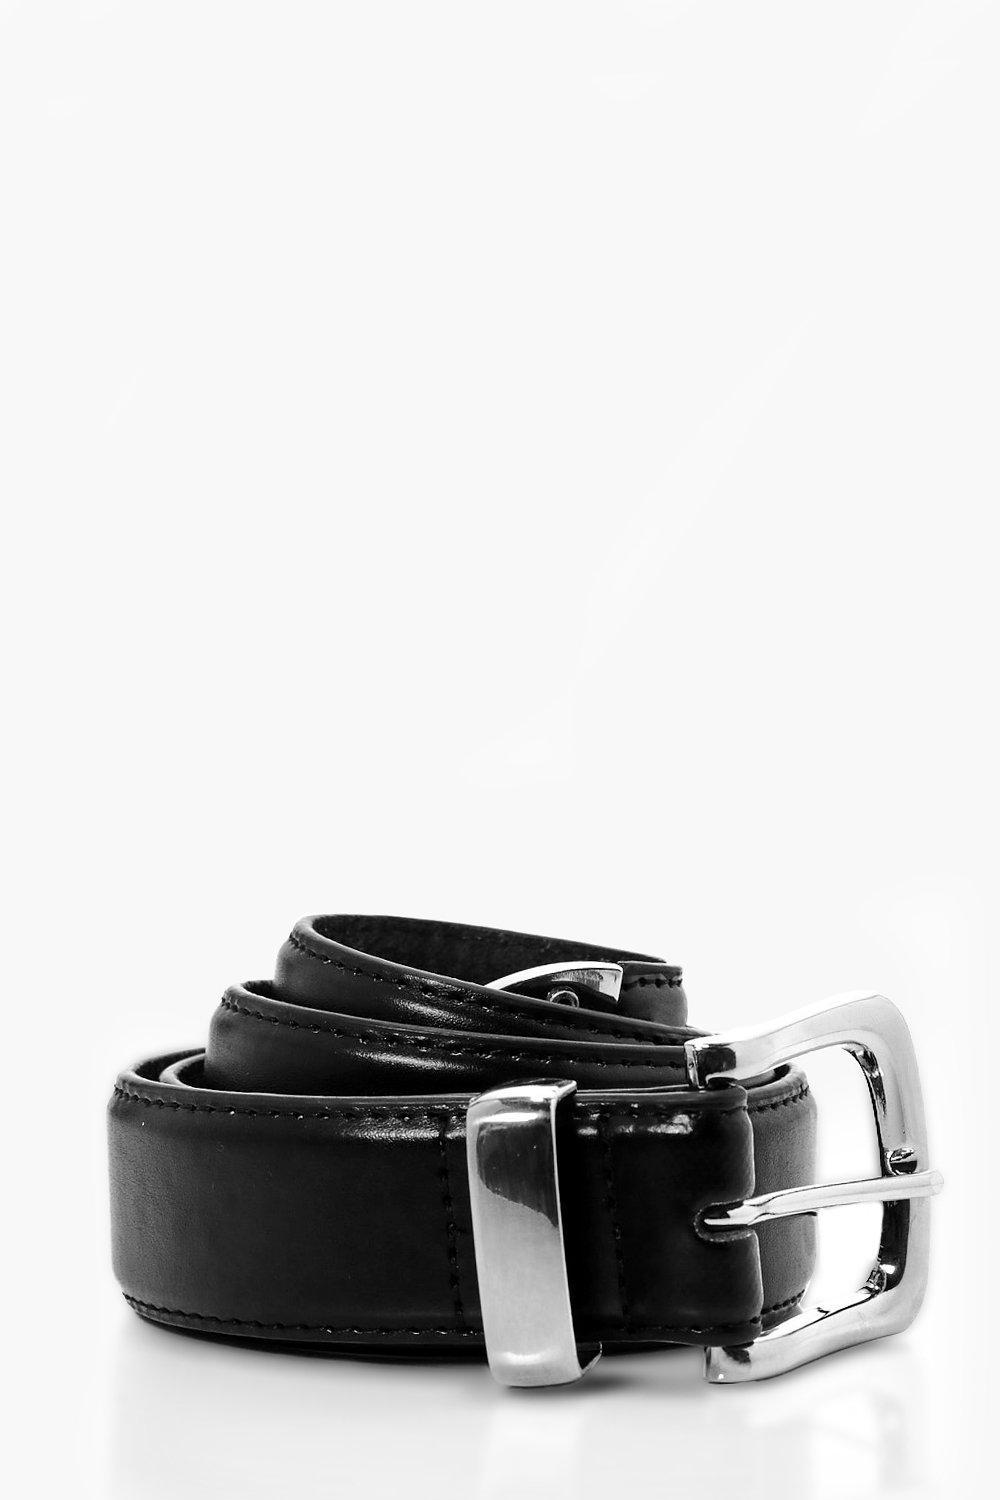 PU belt With Chrome Tip - black - Black PU belt Wi